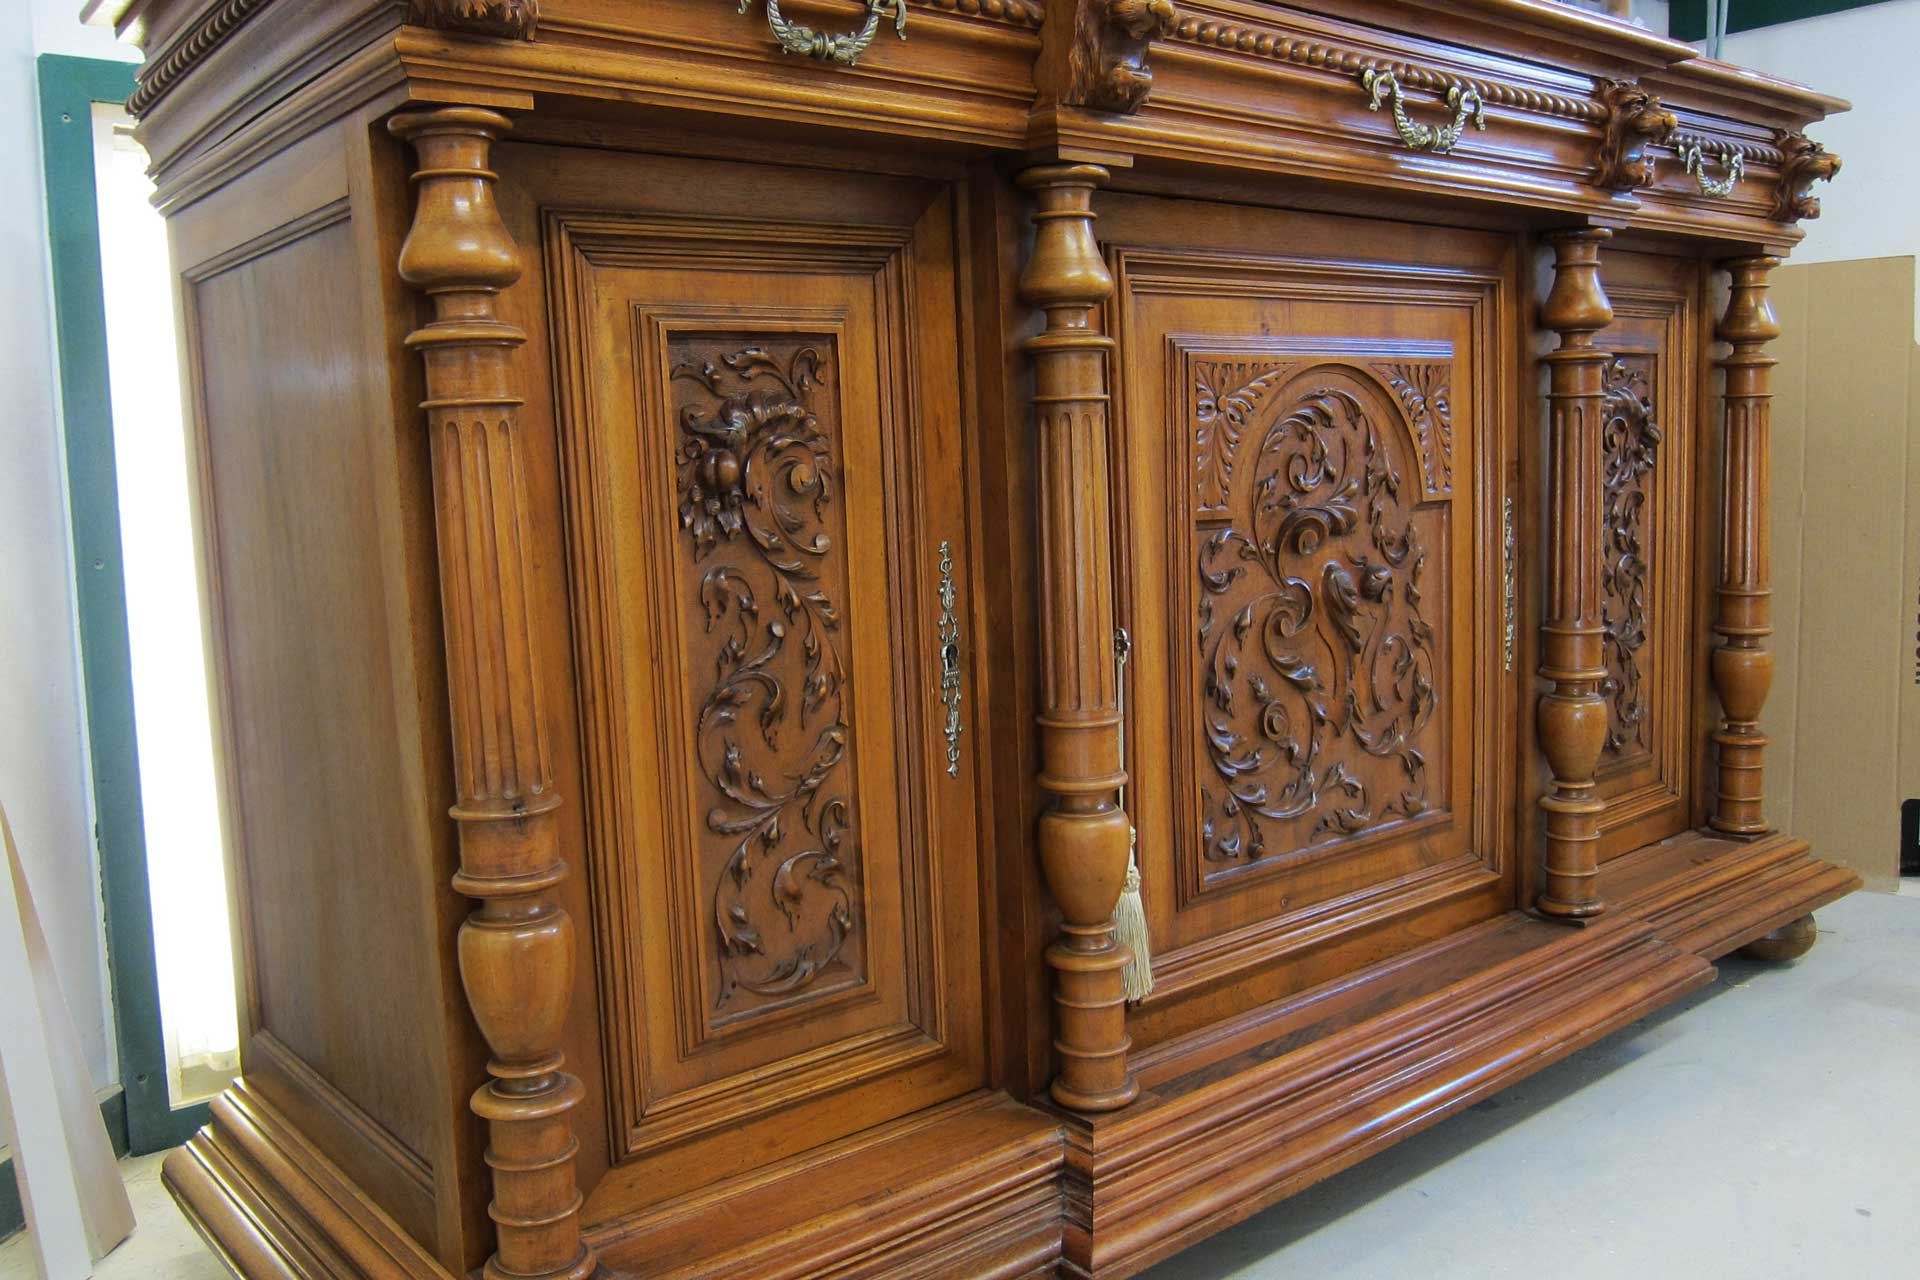 Furniture Restoration And Repair In Nh Me Cormack Construction